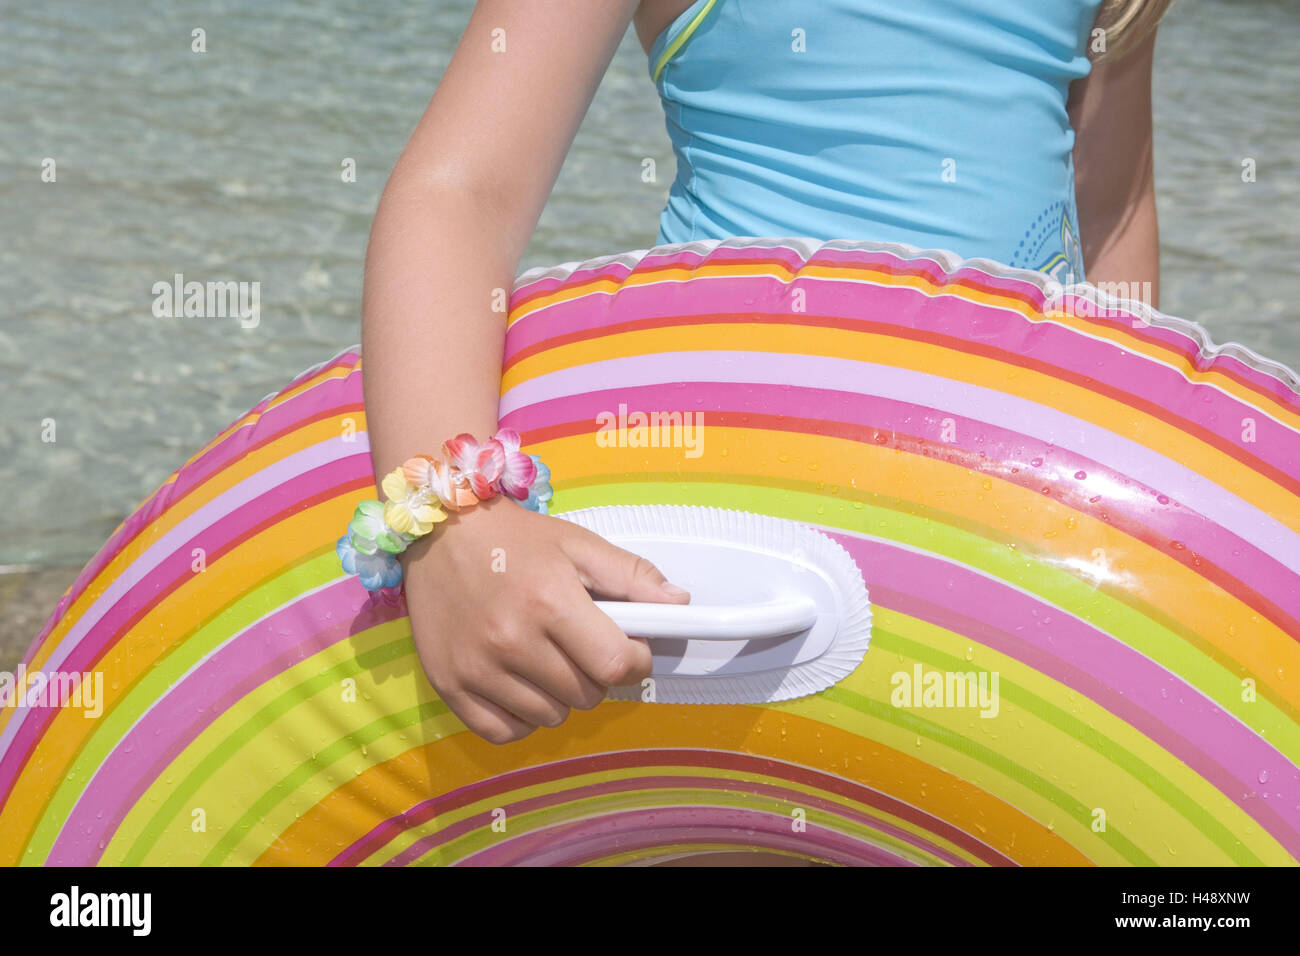 8277657f97692 Girls, swimming ring, water, detail, icon, swim, have of a bath, fun, play,  summers, vacation, holidays, leisure time, sea, bracelet, swimsuit, ...